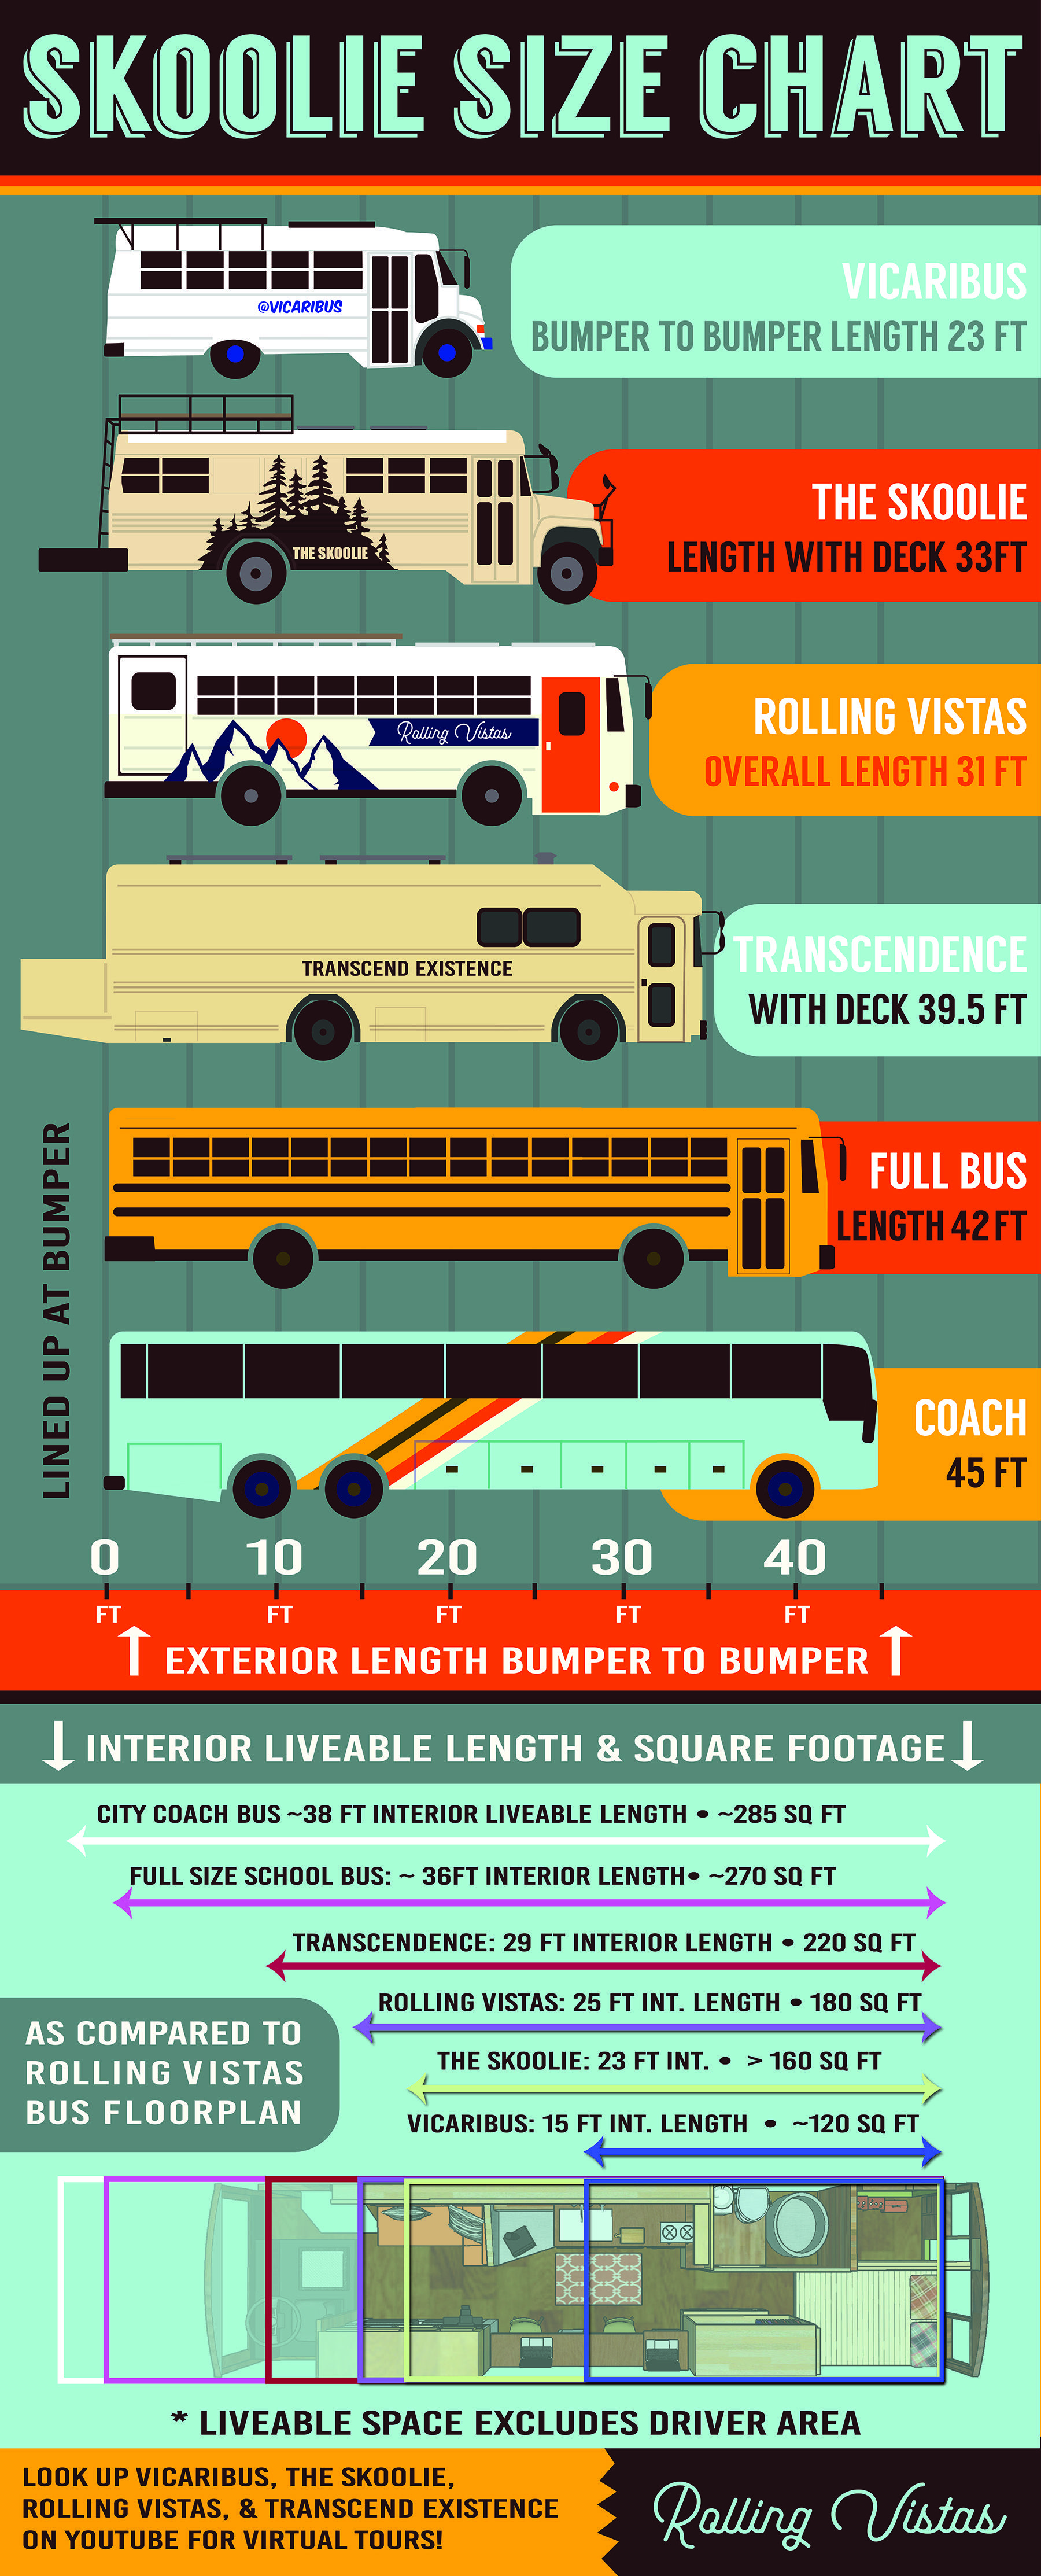 school bus conversion definitive size guide what length skoolie is right for you by rolling vistas [ 1800 x 4453 Pixel ]